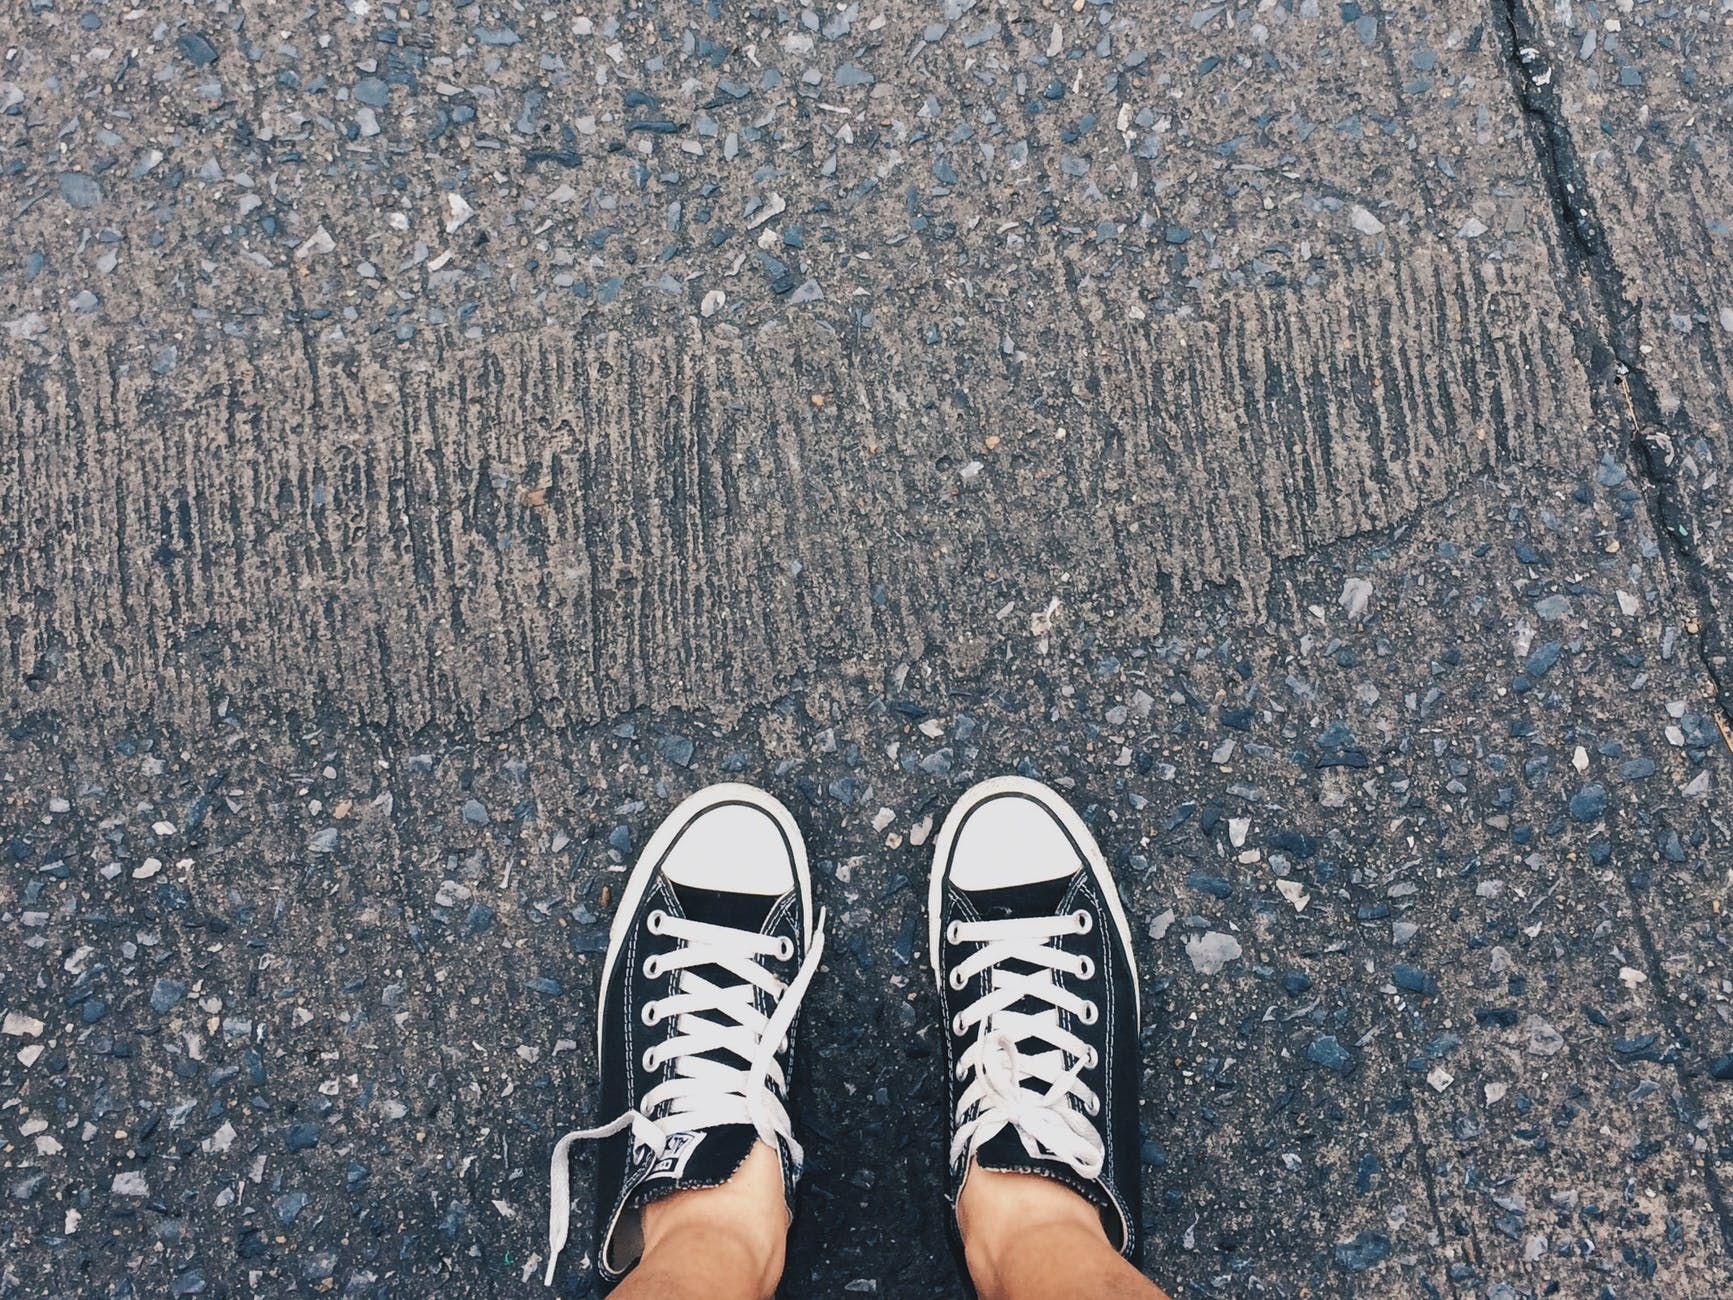 person wearing pair of black and white converse all star low sneakers